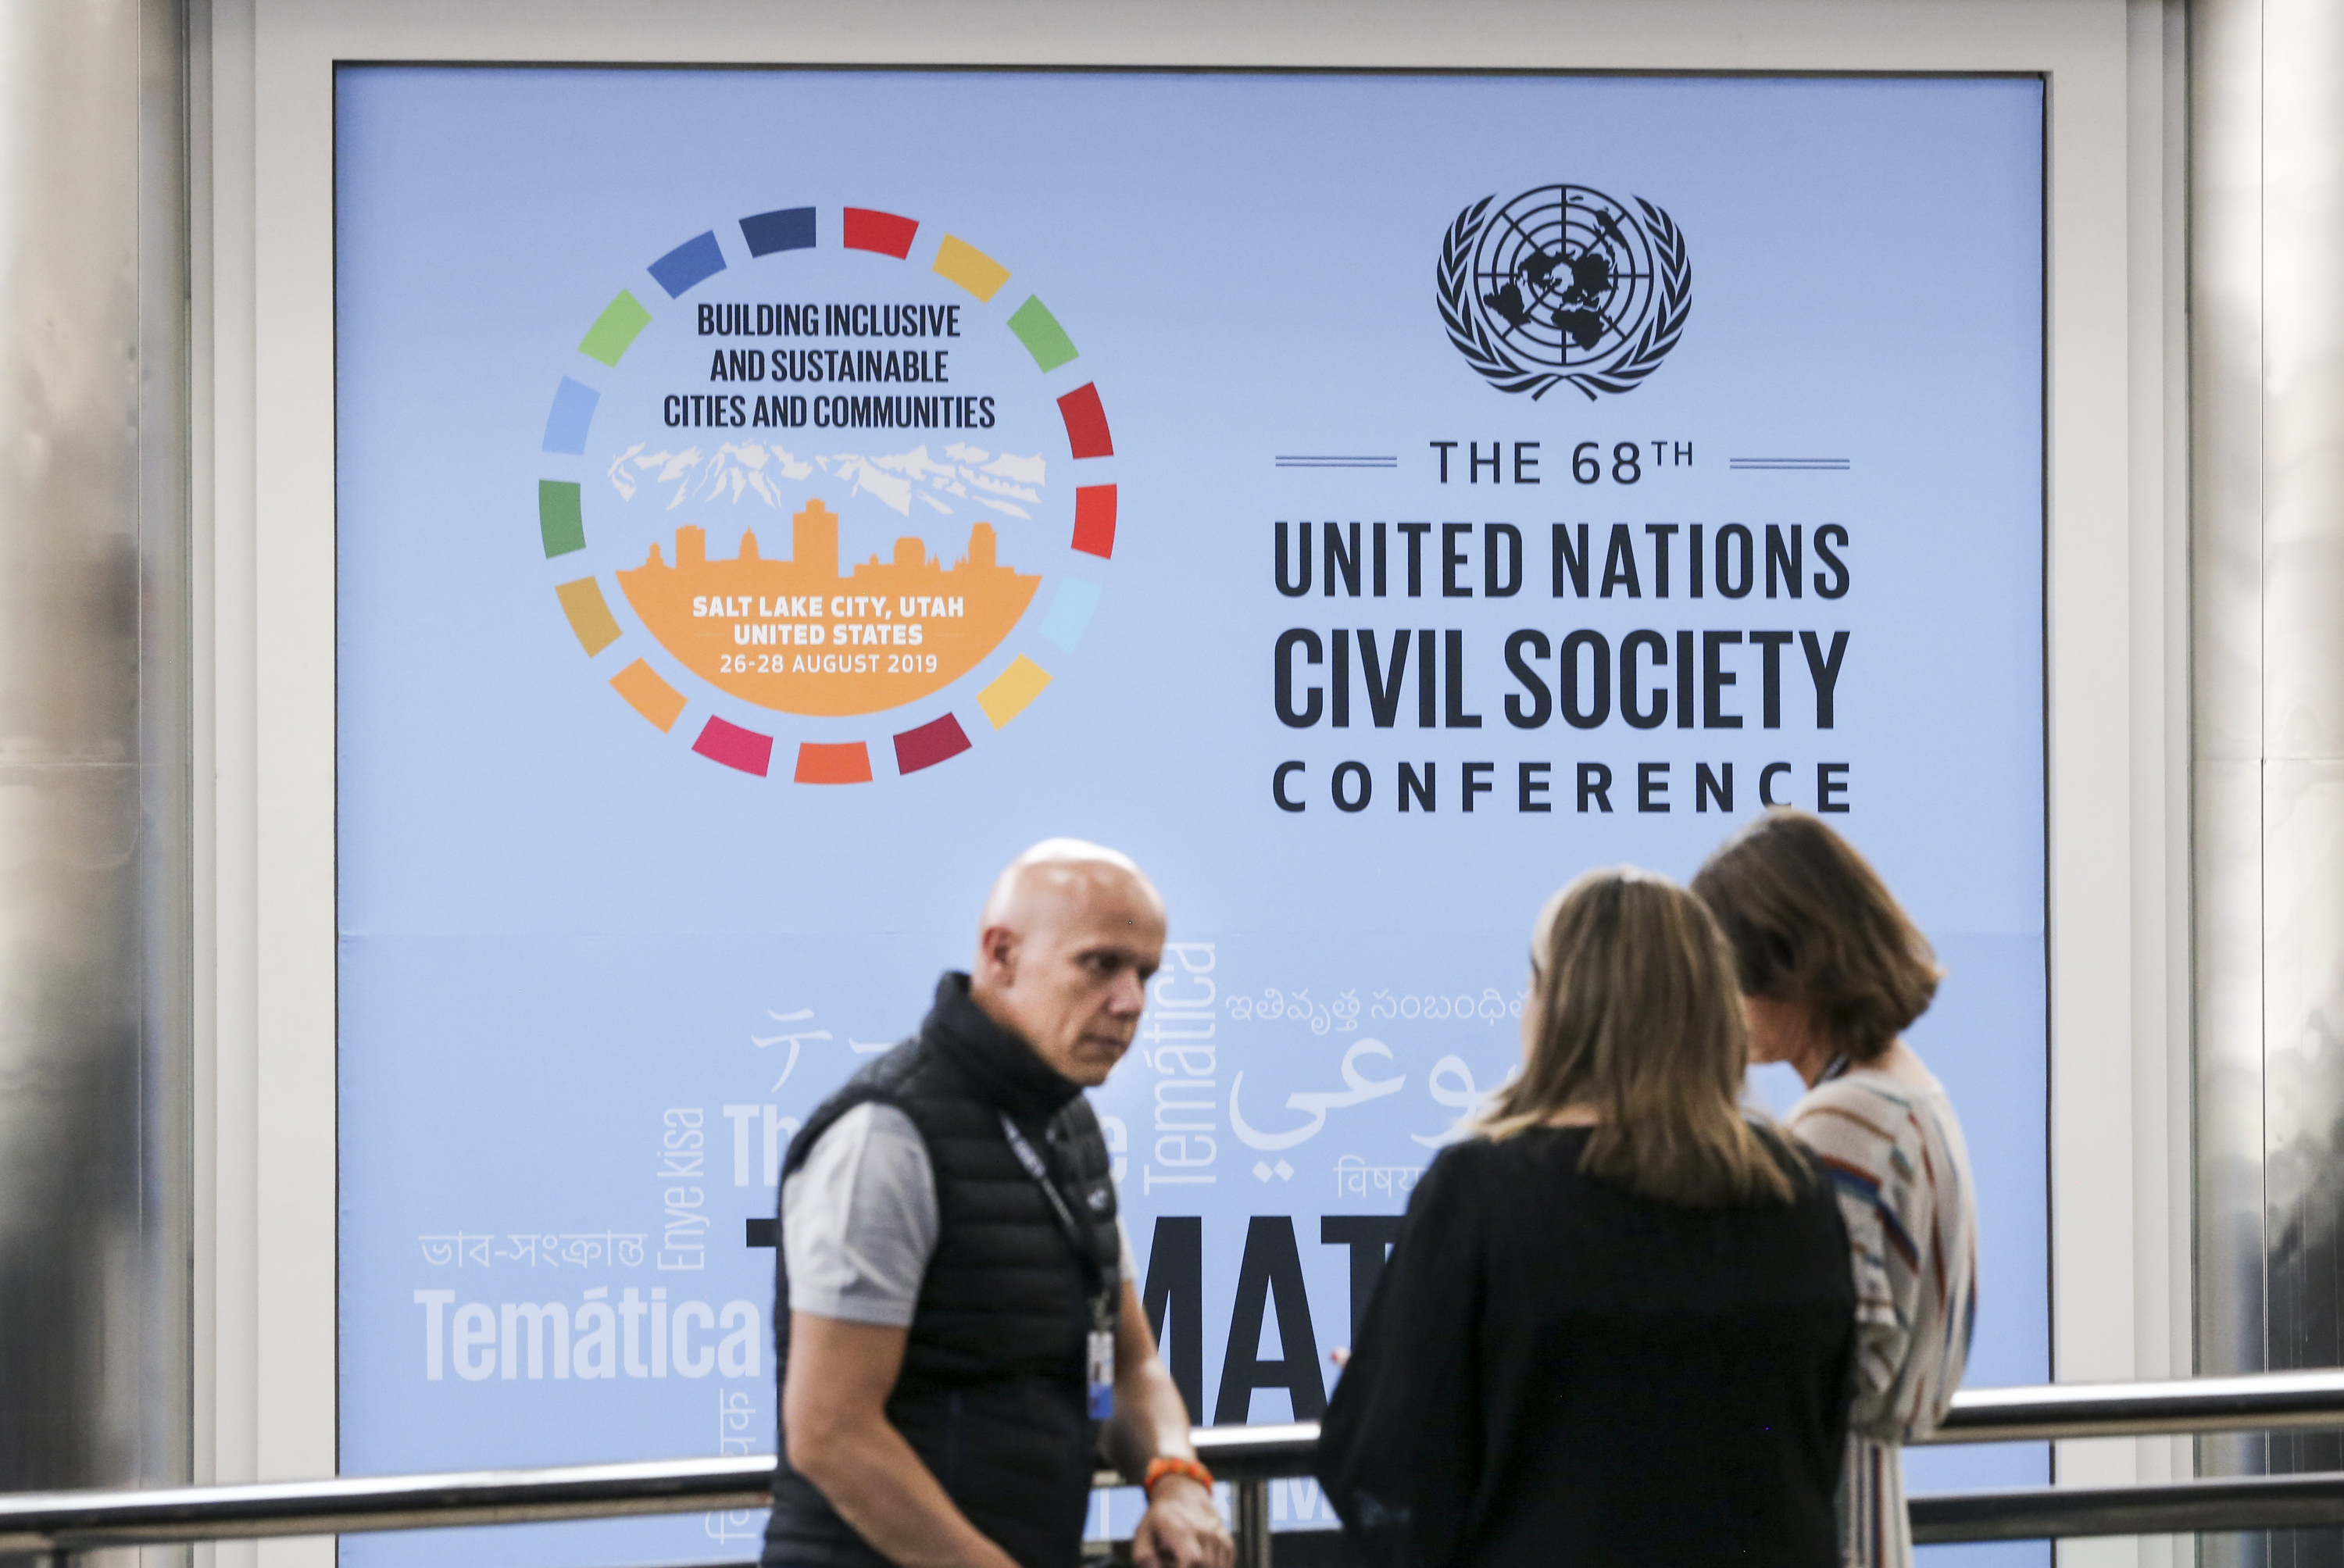 Jose Fernandez Alcala, left, Maria Rodriguez and Paloma Irujo, who are from Spain, talk inside the Salt Palace Convention Center in Salt Lake City on Sunday, Aug. 25, 2019. Beginning Monday, the convention center will host the 68th U.N. Civil Society Conference, which is expected to draw 6,000 participants from around the world.